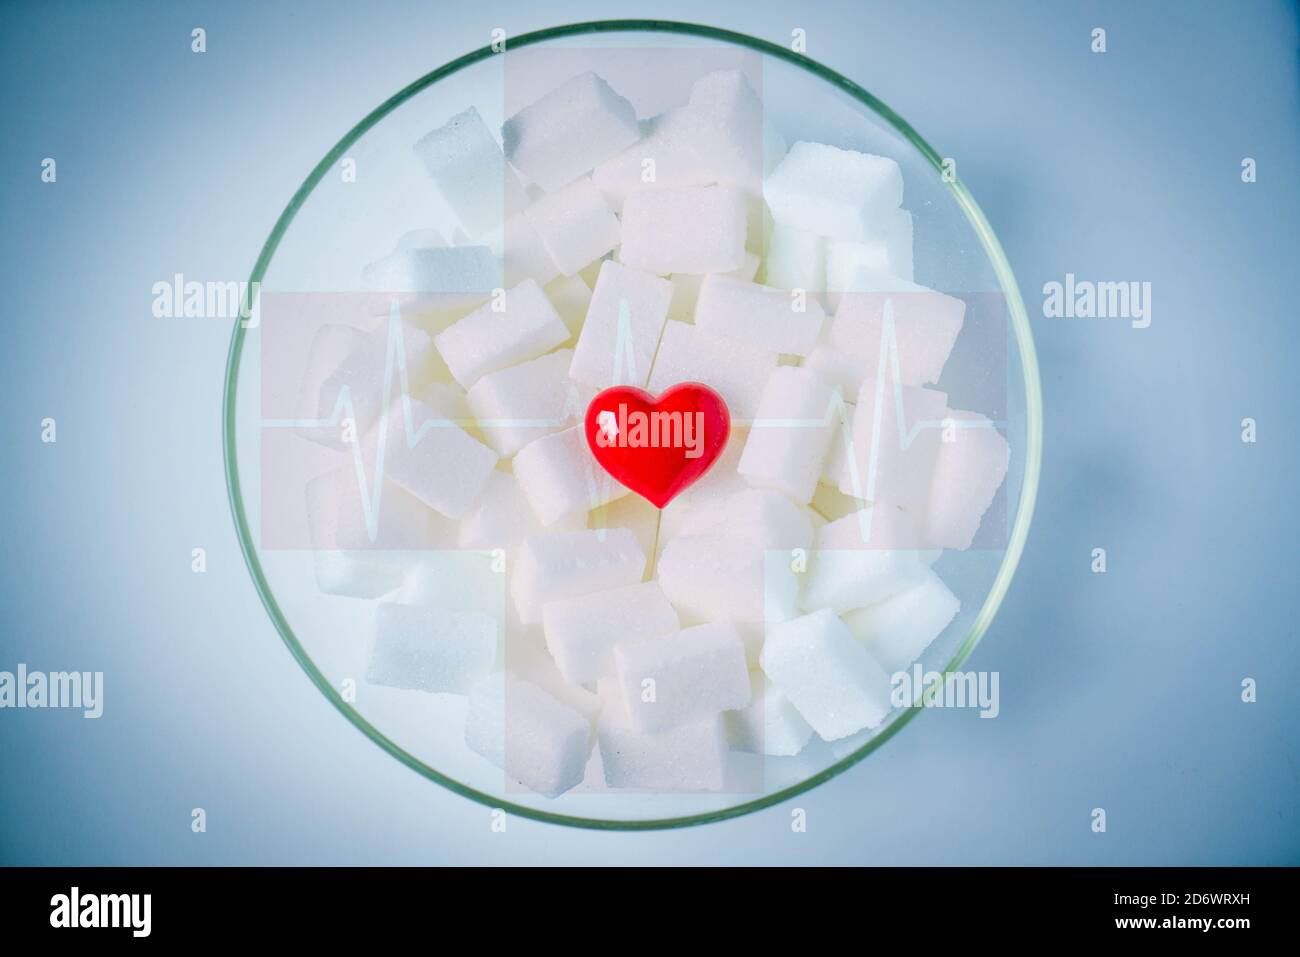 Conceptual image on sugar consumption excess. Stock Photo